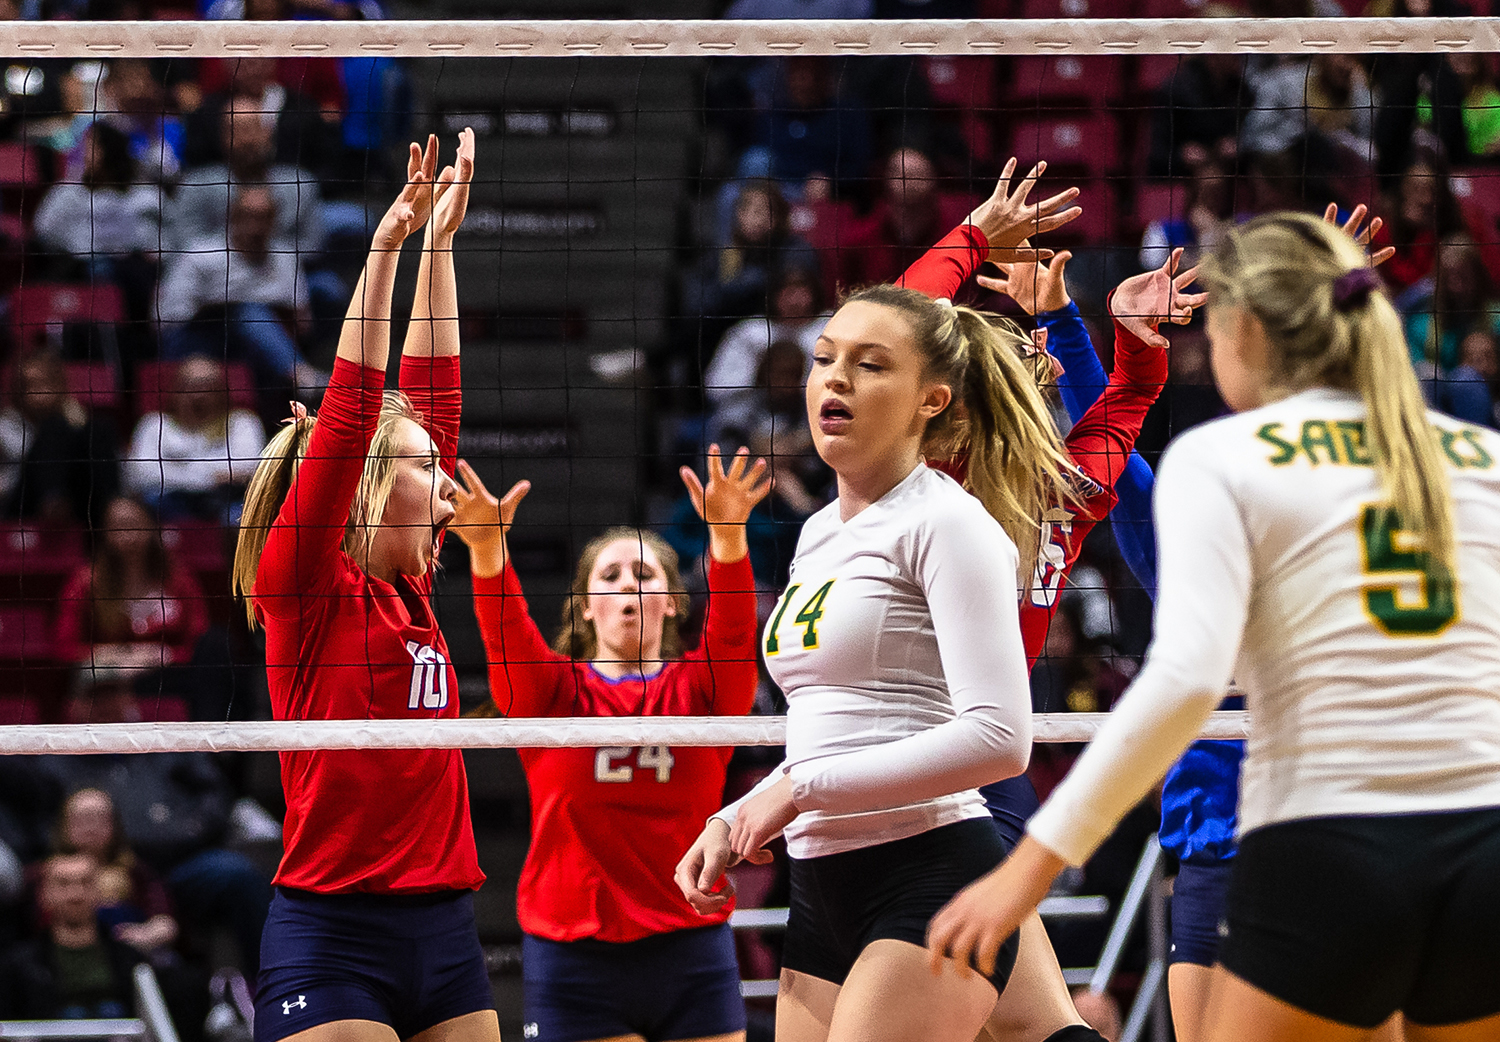 Pleasant Plains' Allie Edwards (10) celebrates a block against Champaign St. Thomas More during the Class 2A IHSA Volleyball State Final Tournament semifinals at Redbird Arena, Friday, Nov. 9, 2018, in Normal, Ill. [Justin L. Fowler/The State Journal-Register]